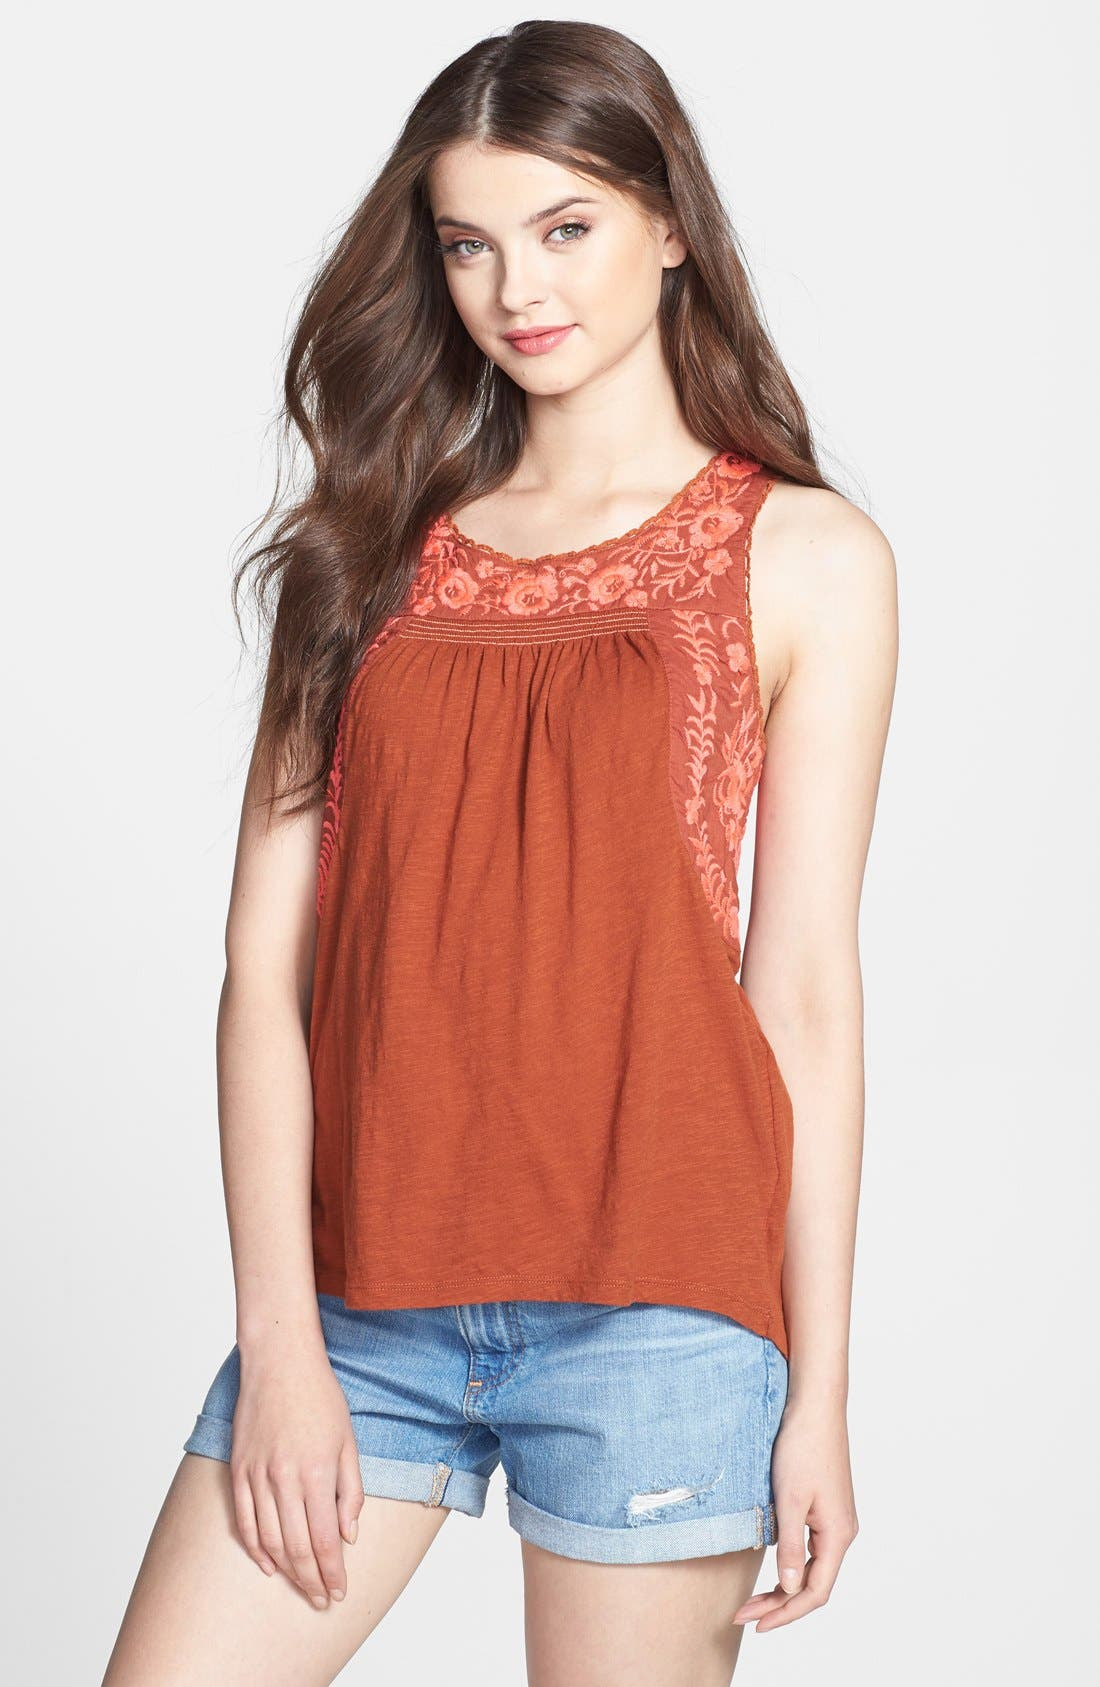 Alternate Image 1 Selected - Lucky Brand 'Rosalina' Embroidered Top